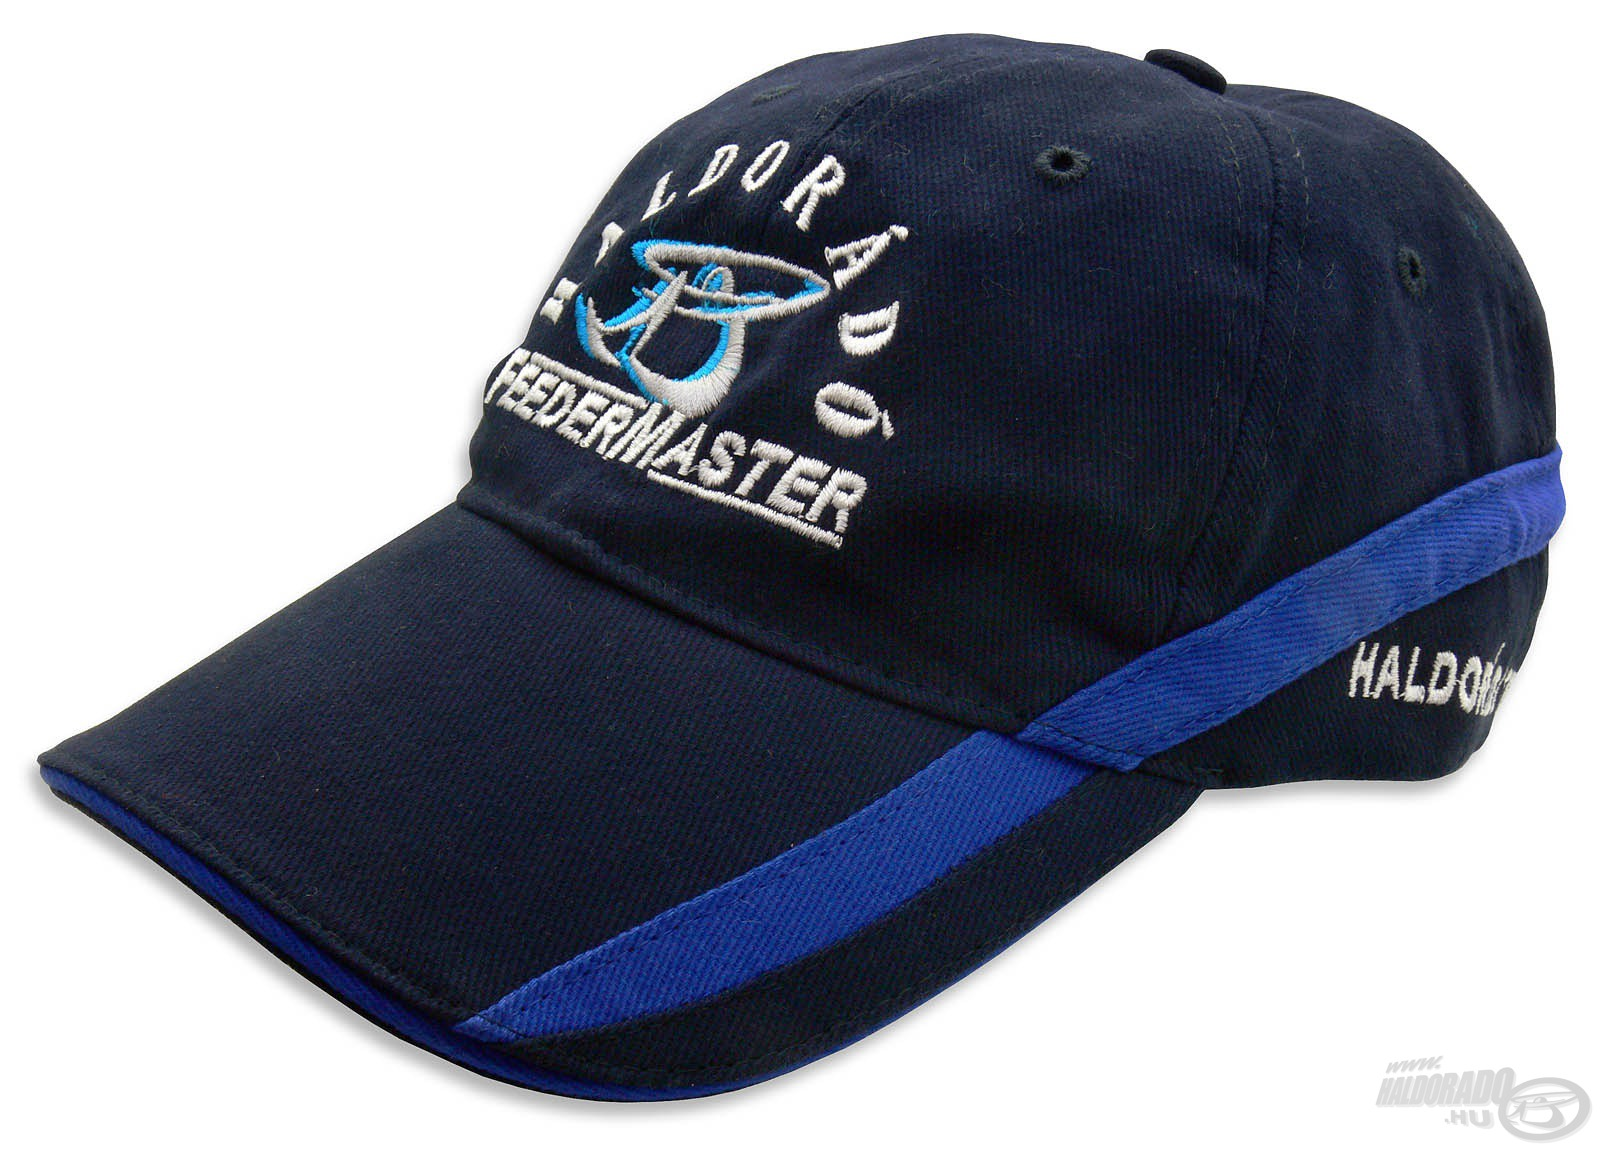 HALDOR�D� New Team Cap 2016 HardBlue 4490Ft